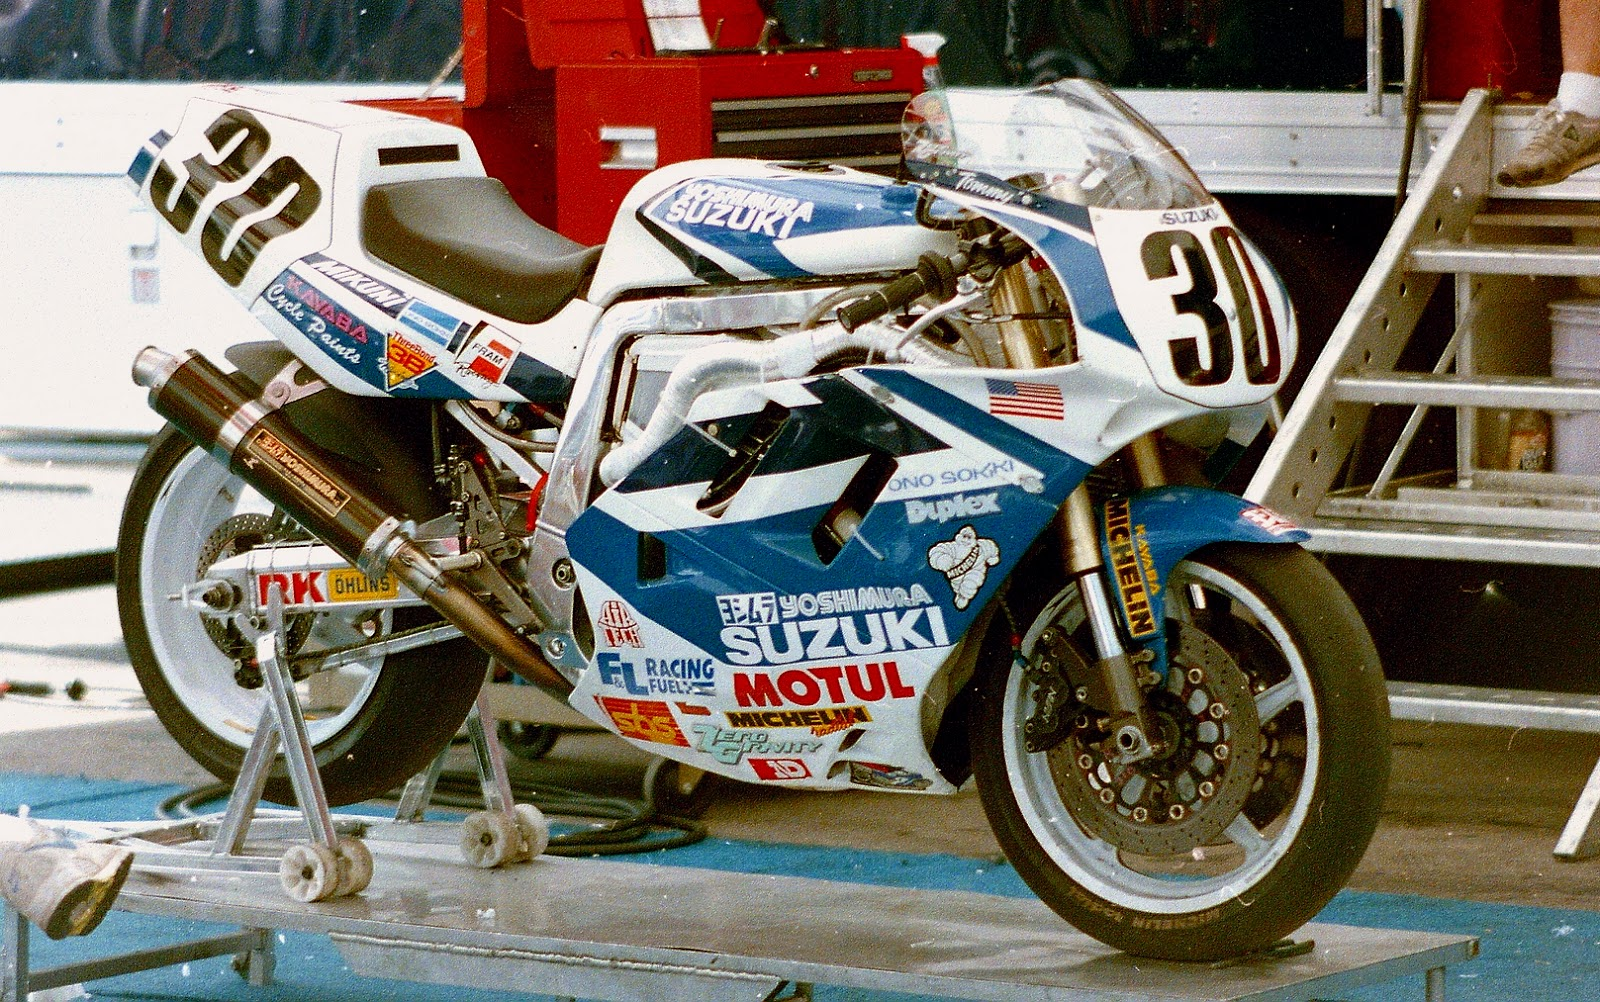 Suzuki Motorcycle Paint Colour Codes >> Stu's Shots R Us: AMA Road Racing: Cycle News.com's Larry Lawrence Catches Up with Former ...